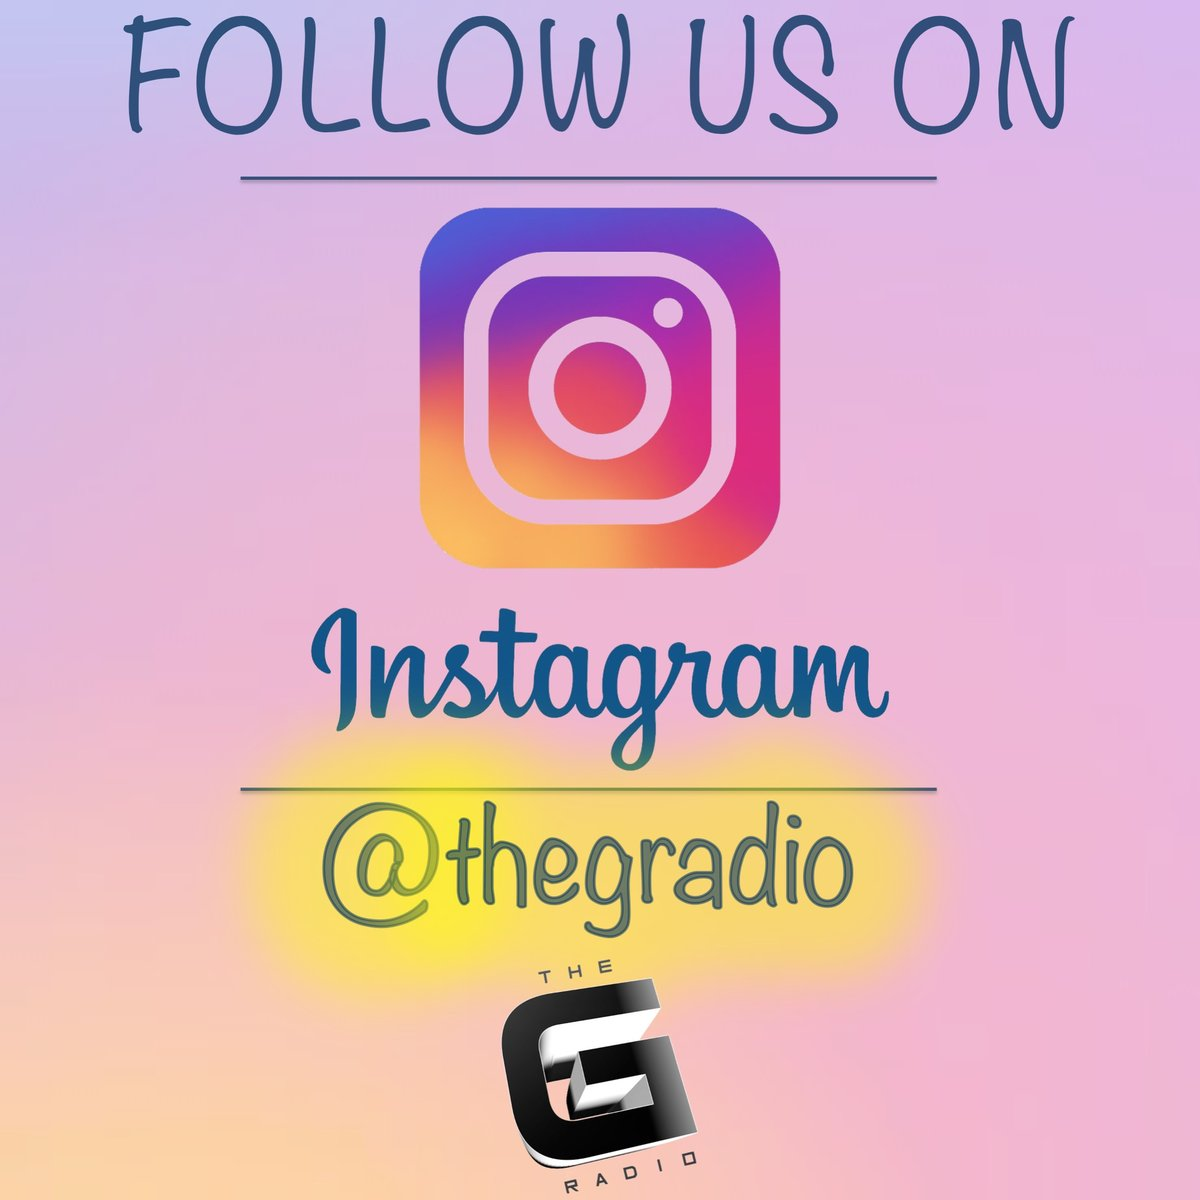 Check Us Out On Instagram!  https://t.co/BmNqx0xn2J  #THEGRADIO #Instagram #Radio #Music #Artists #Rap #HipHop #RnB #MusicIsLife #MusicLovers #Streaming #Radio #Underground #Indie #Unsigned #UnsignedHype #UndergroundRap #UndergroundHipHop #UndergroundArtists #IndieArtists #AllRap https://t.co/i7prrrphhl